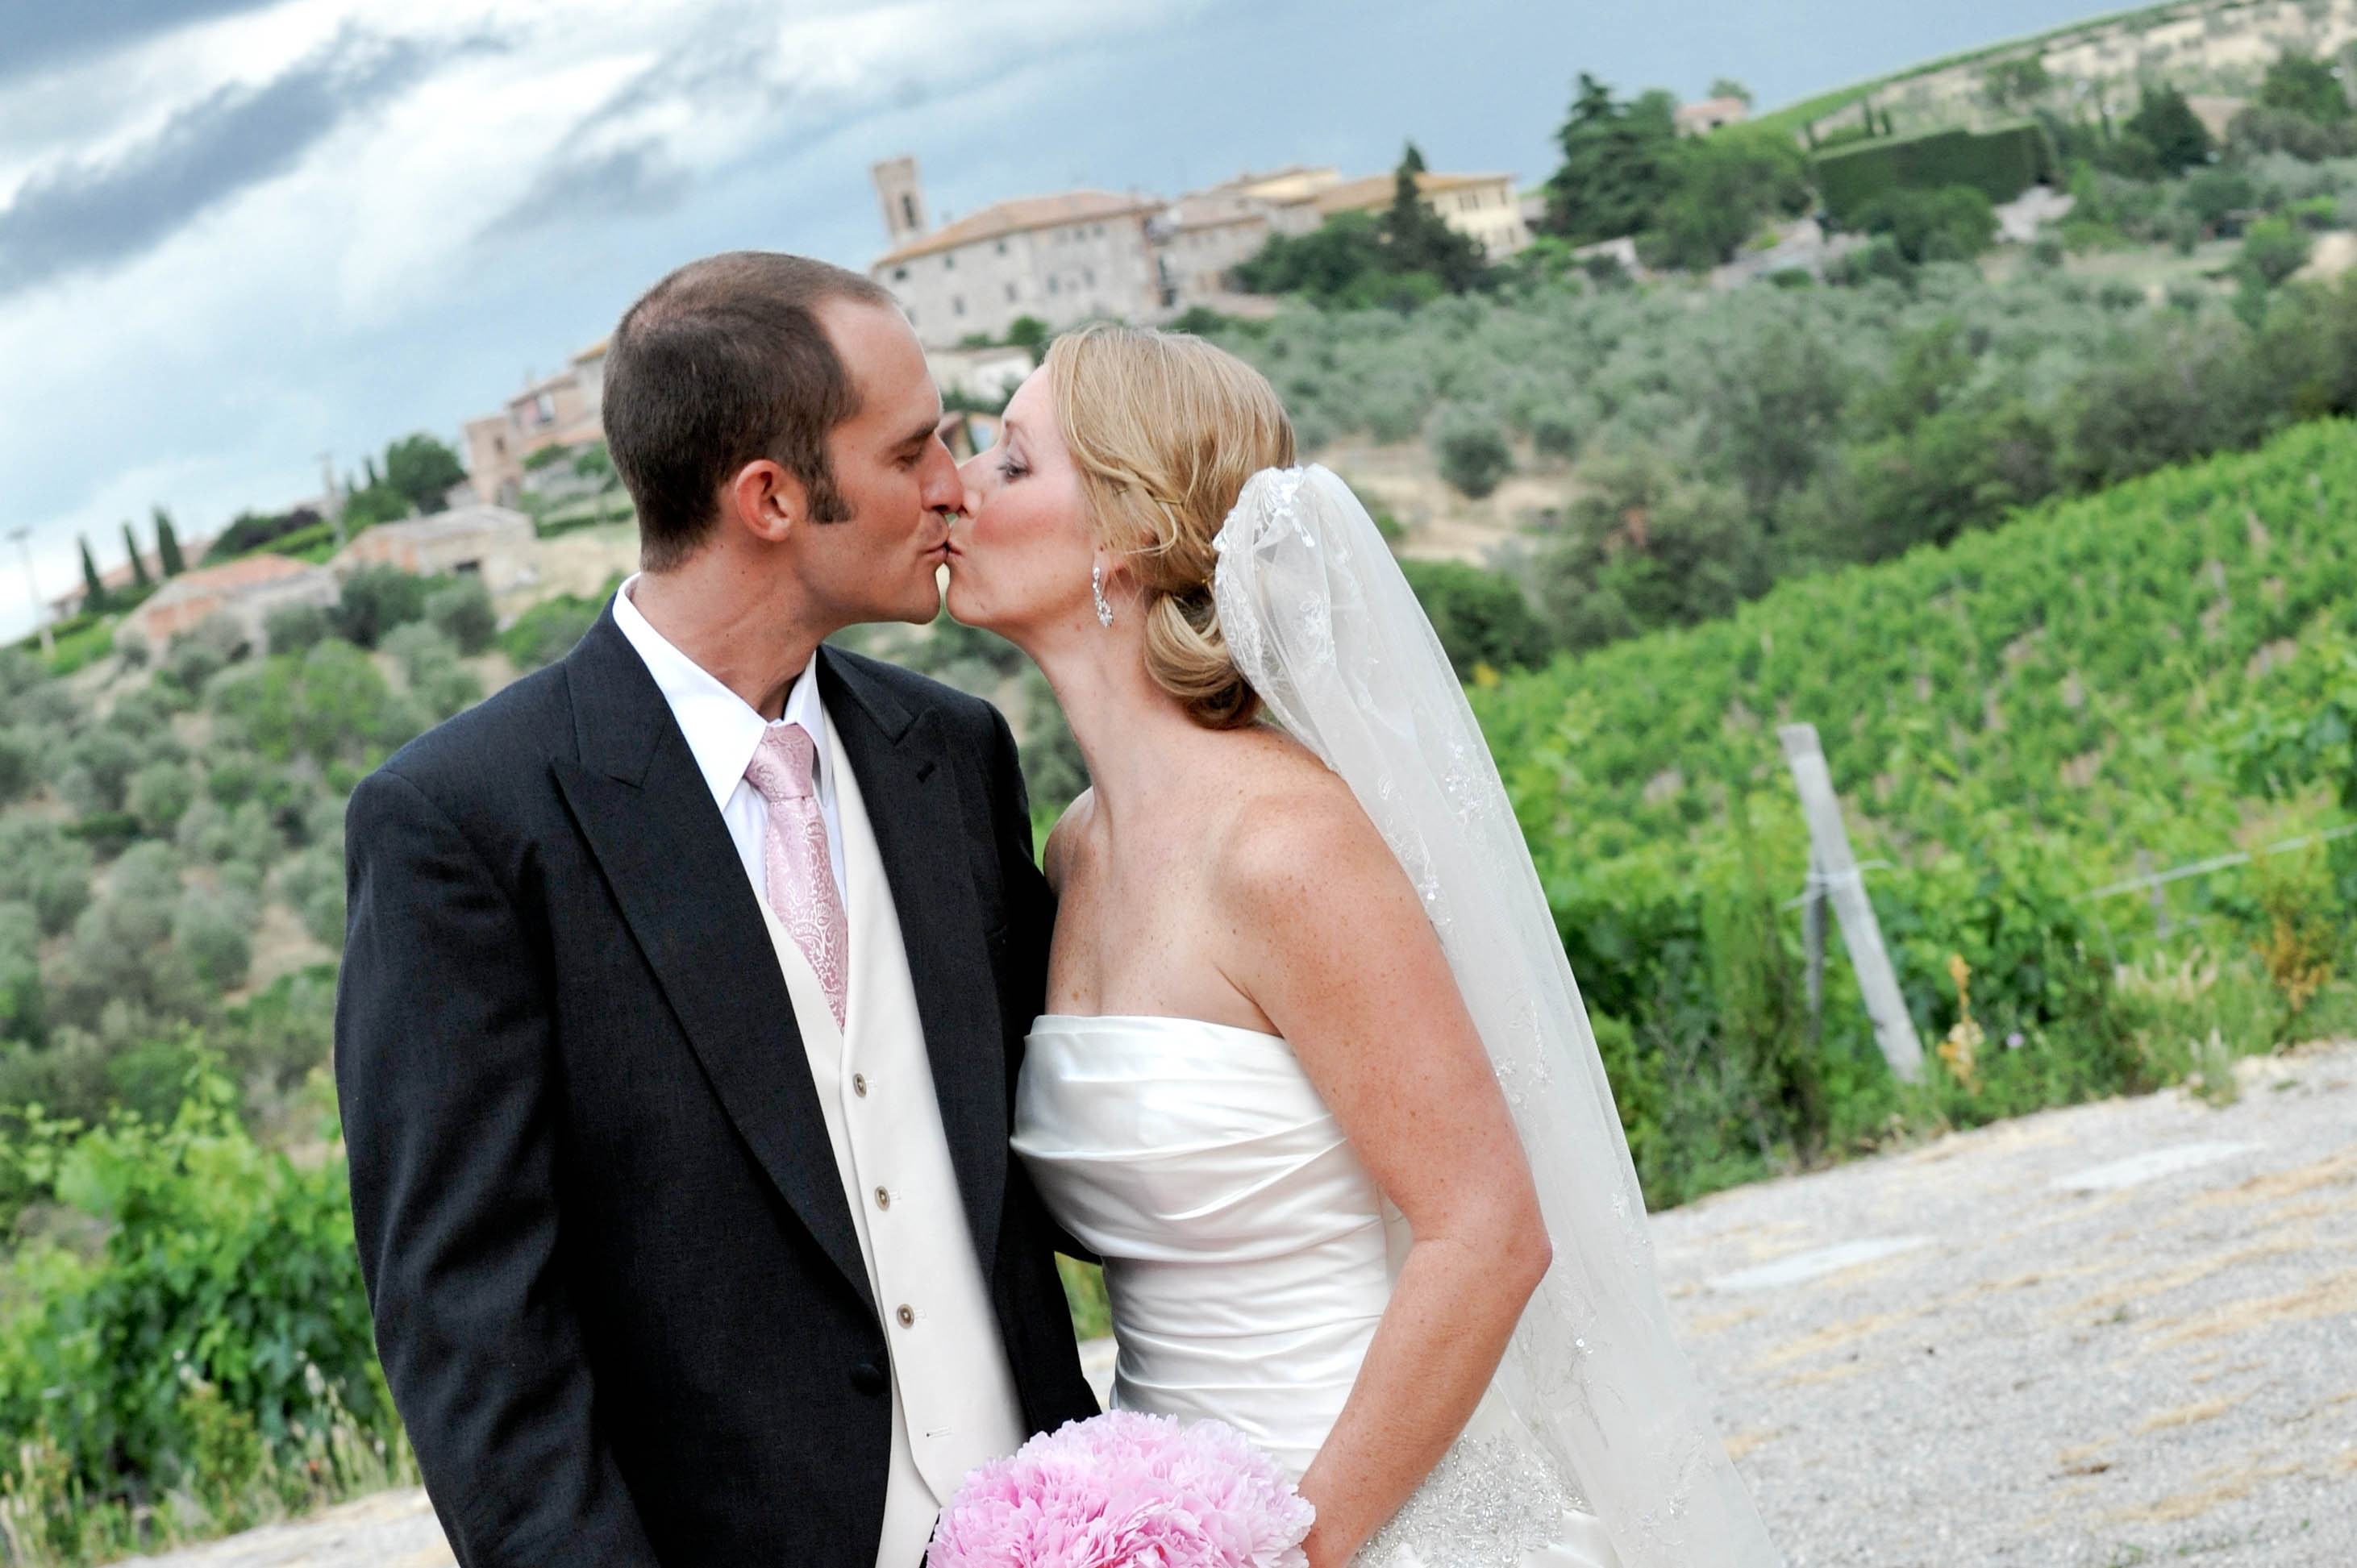 Just married in CHianti Classico